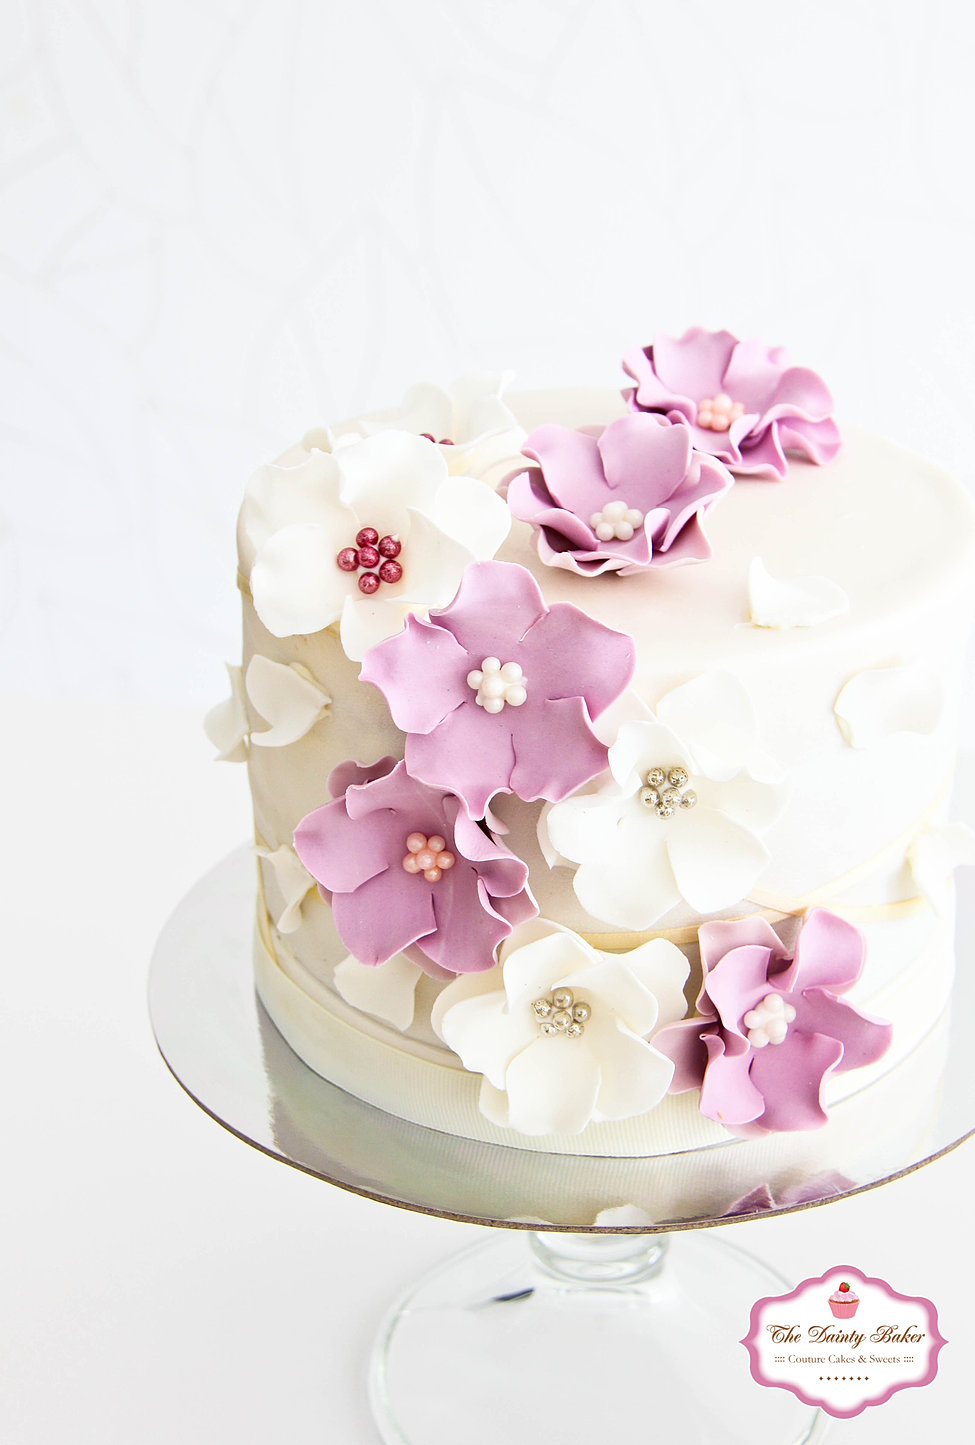 The Dainty Baker - Beautiful Wedding Cakes, Specialty cakes and more